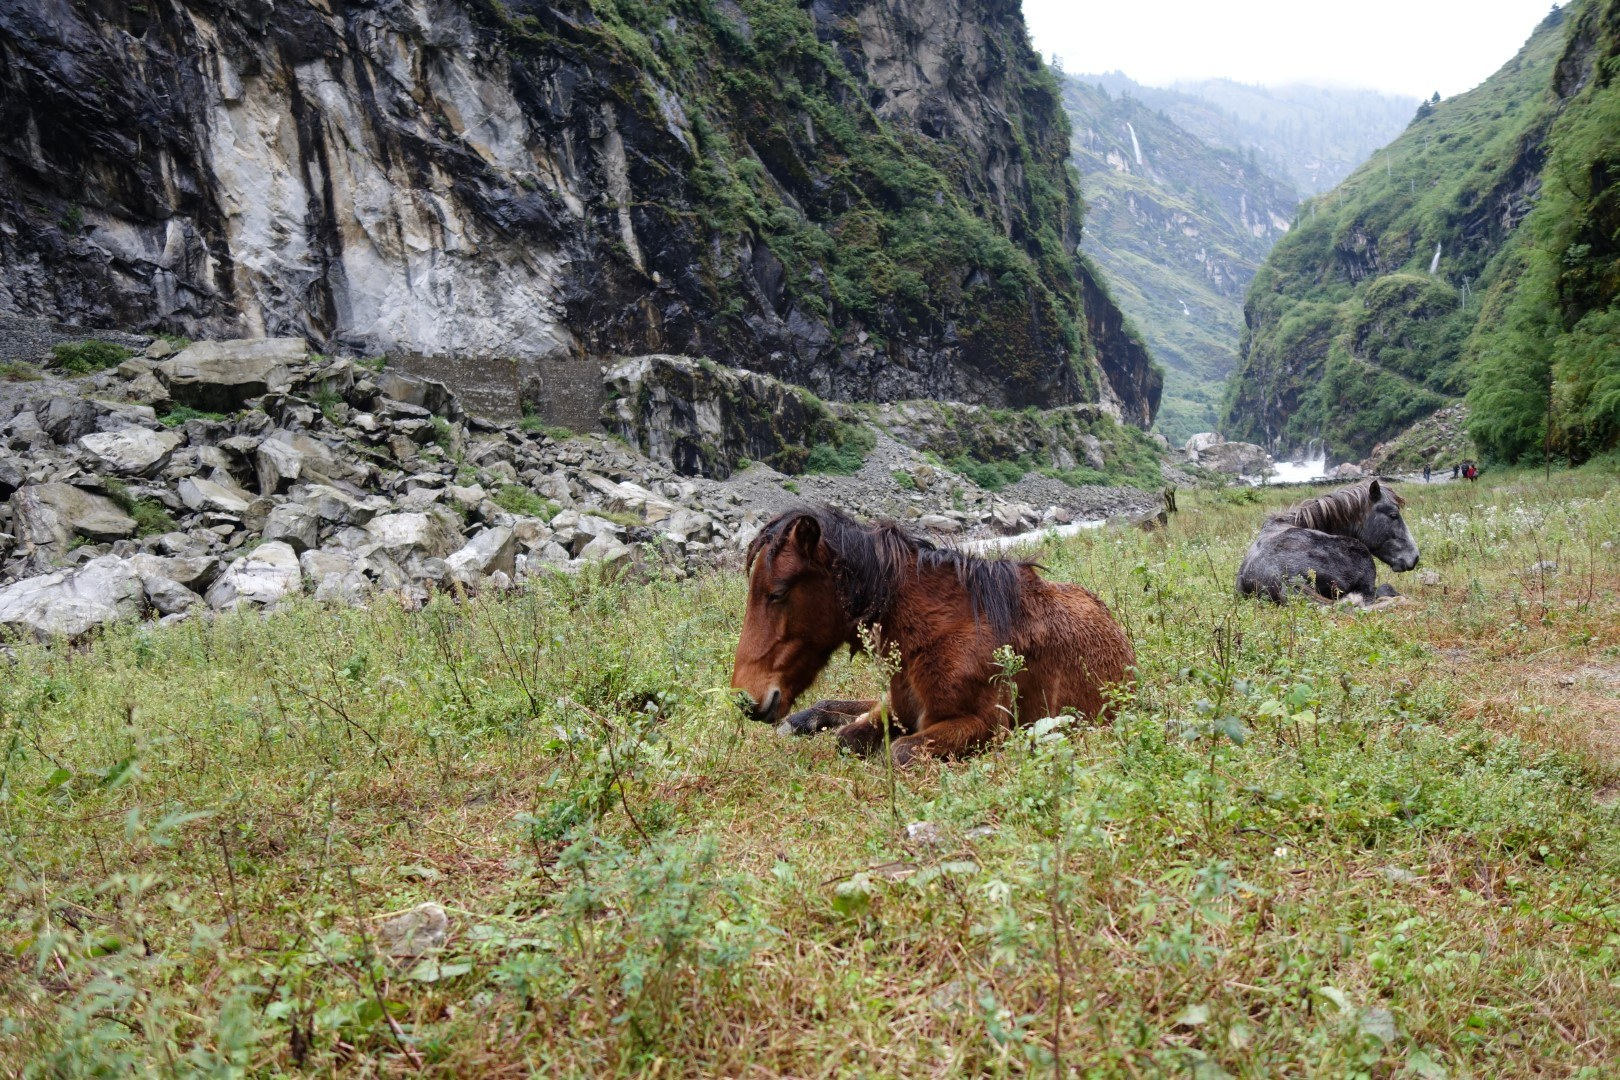 The beautiful wild horses of Tal - Annapurna Circuit route